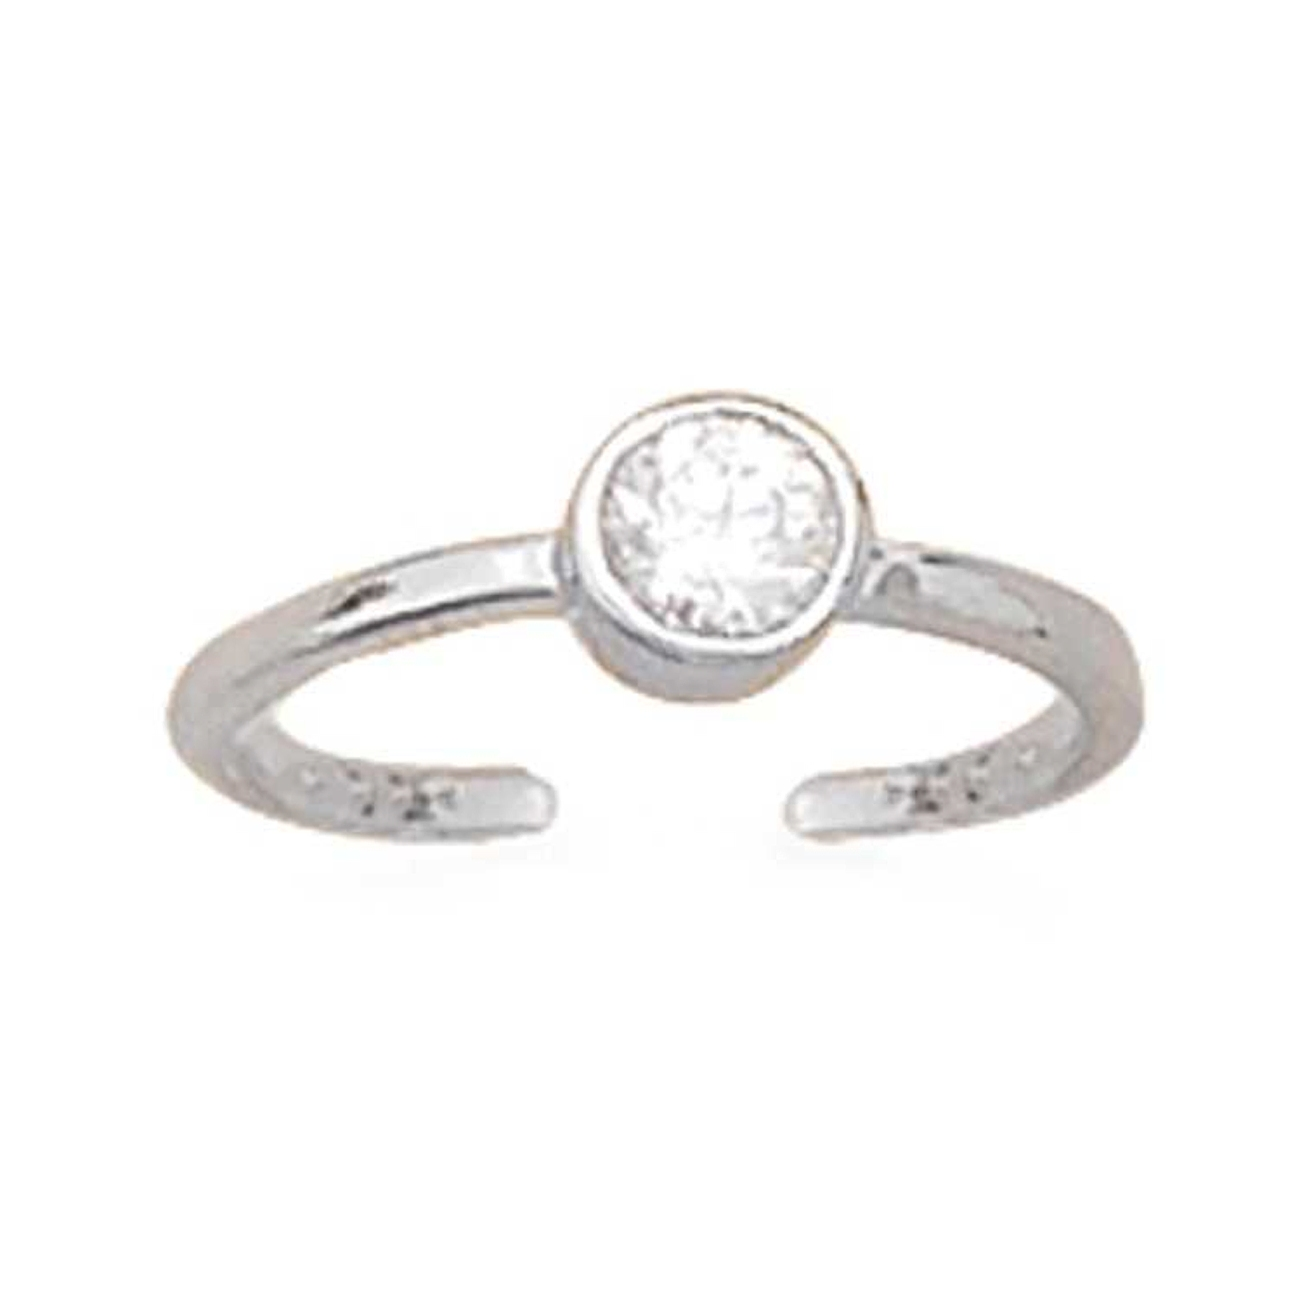 Round Solitaire Cubic Zirconia Adjustable Toe Ring